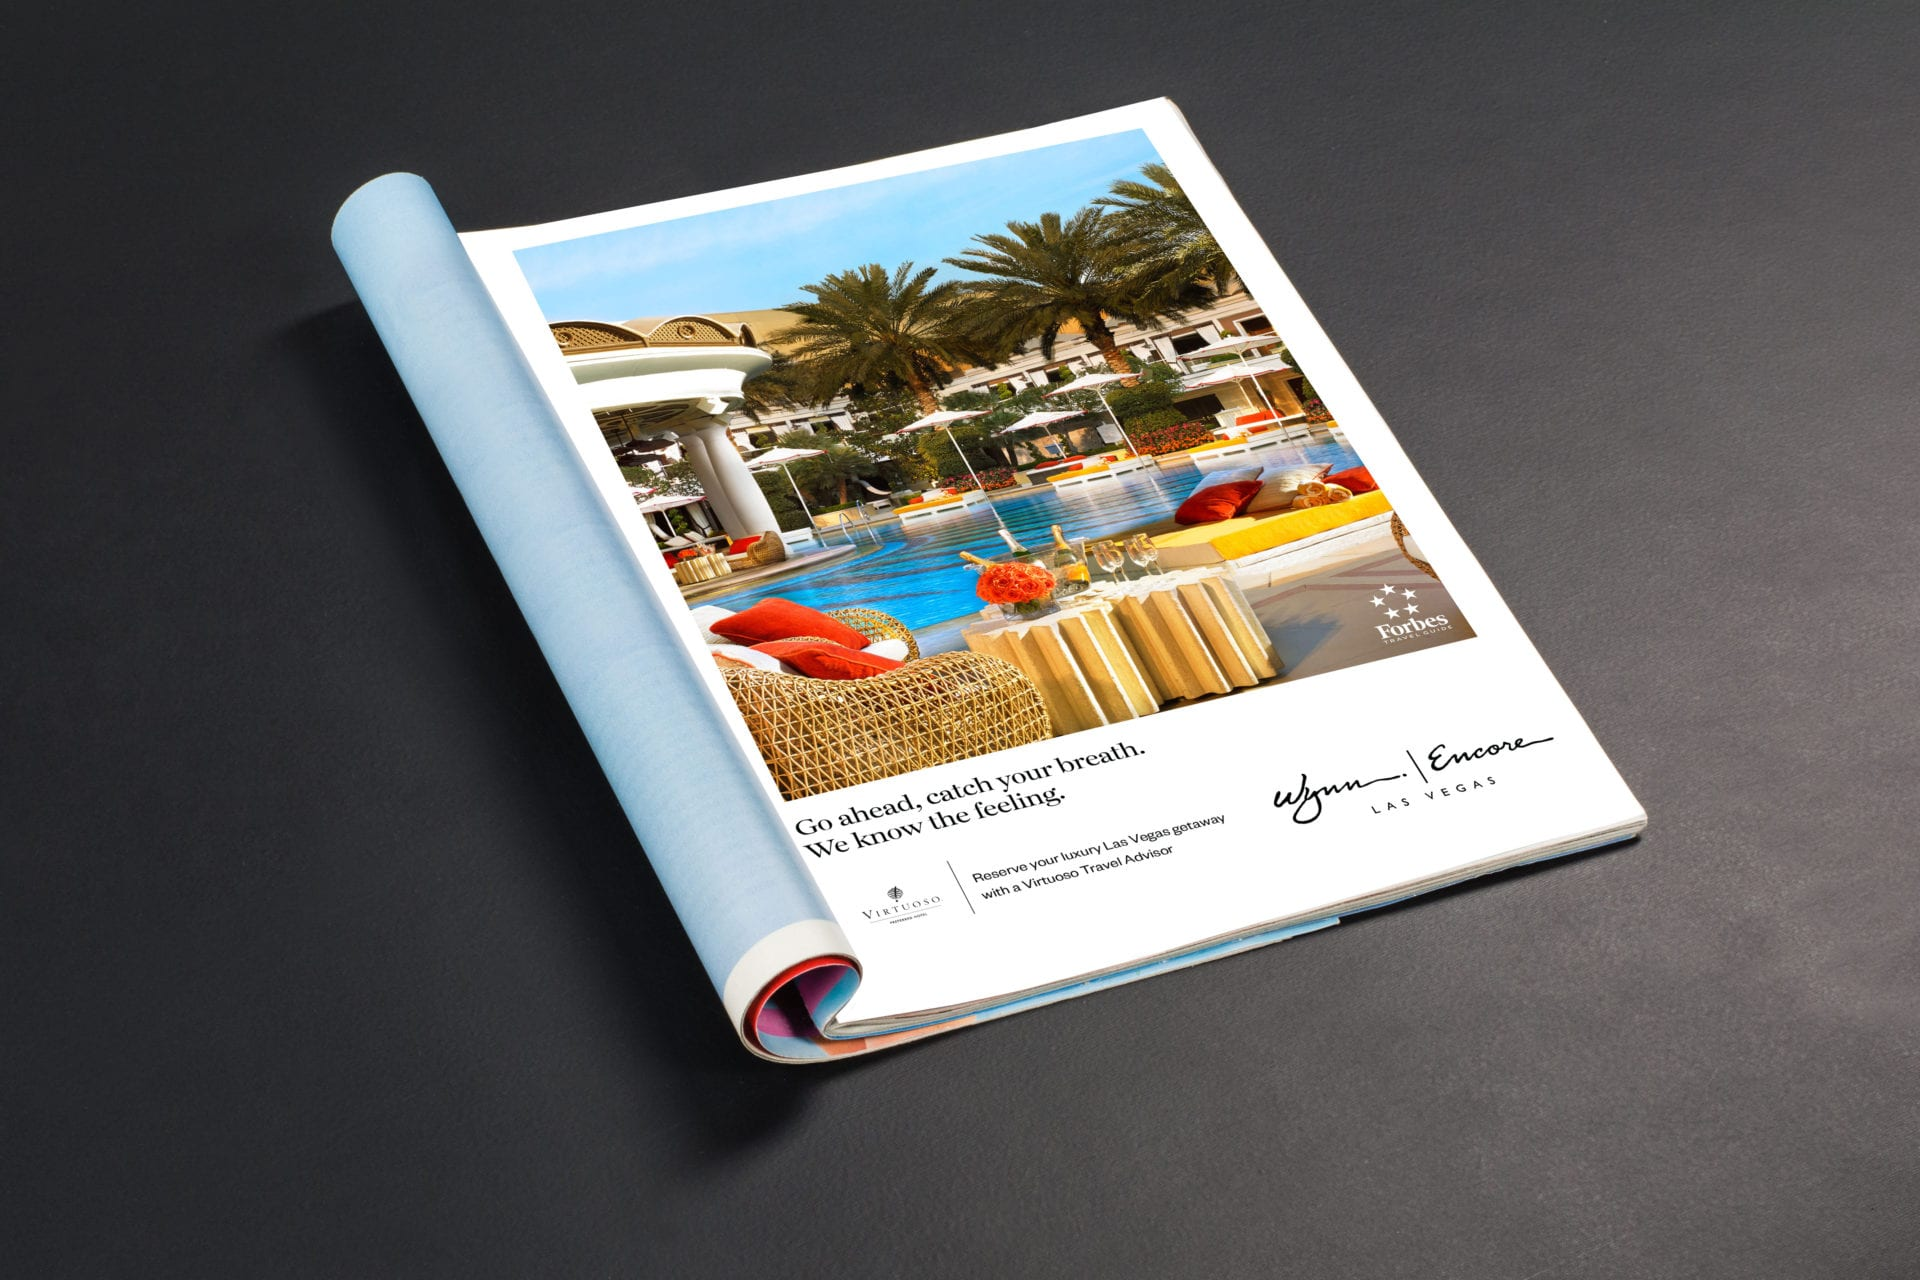 A magazine ad for the Wynn Las Vegas, designed by Canyon Creative